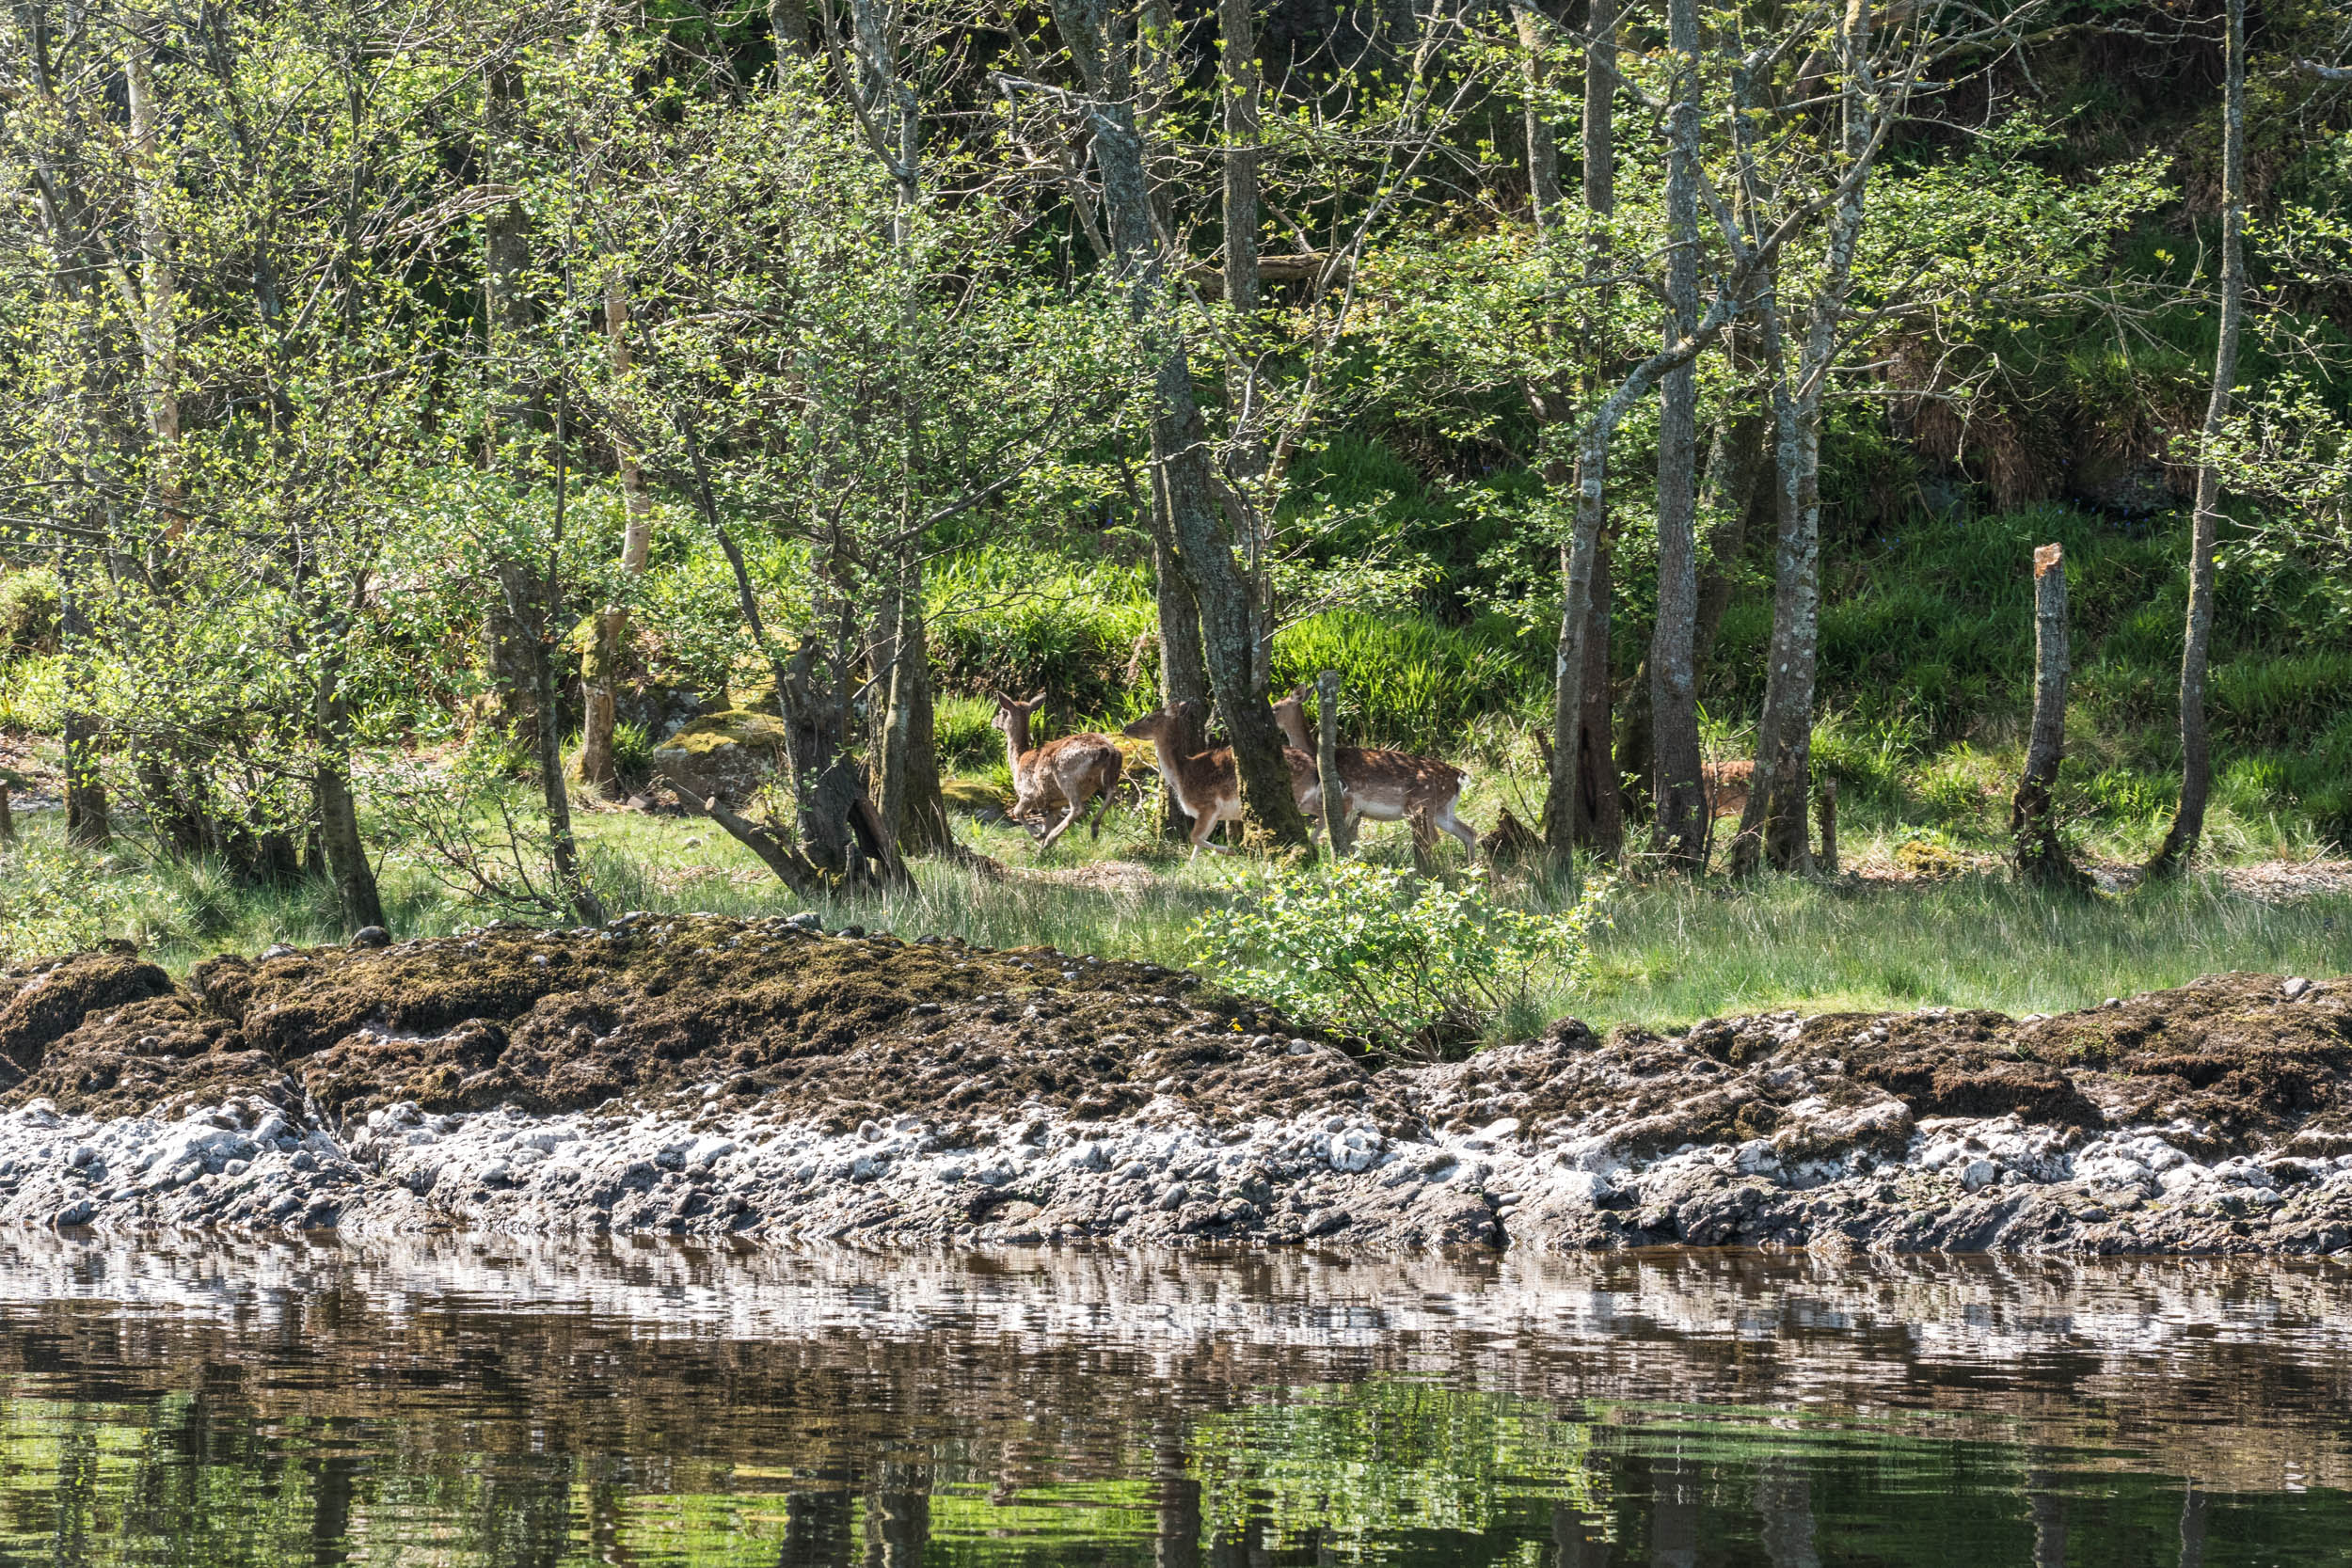 Deer on approach to Inchcailloch Island